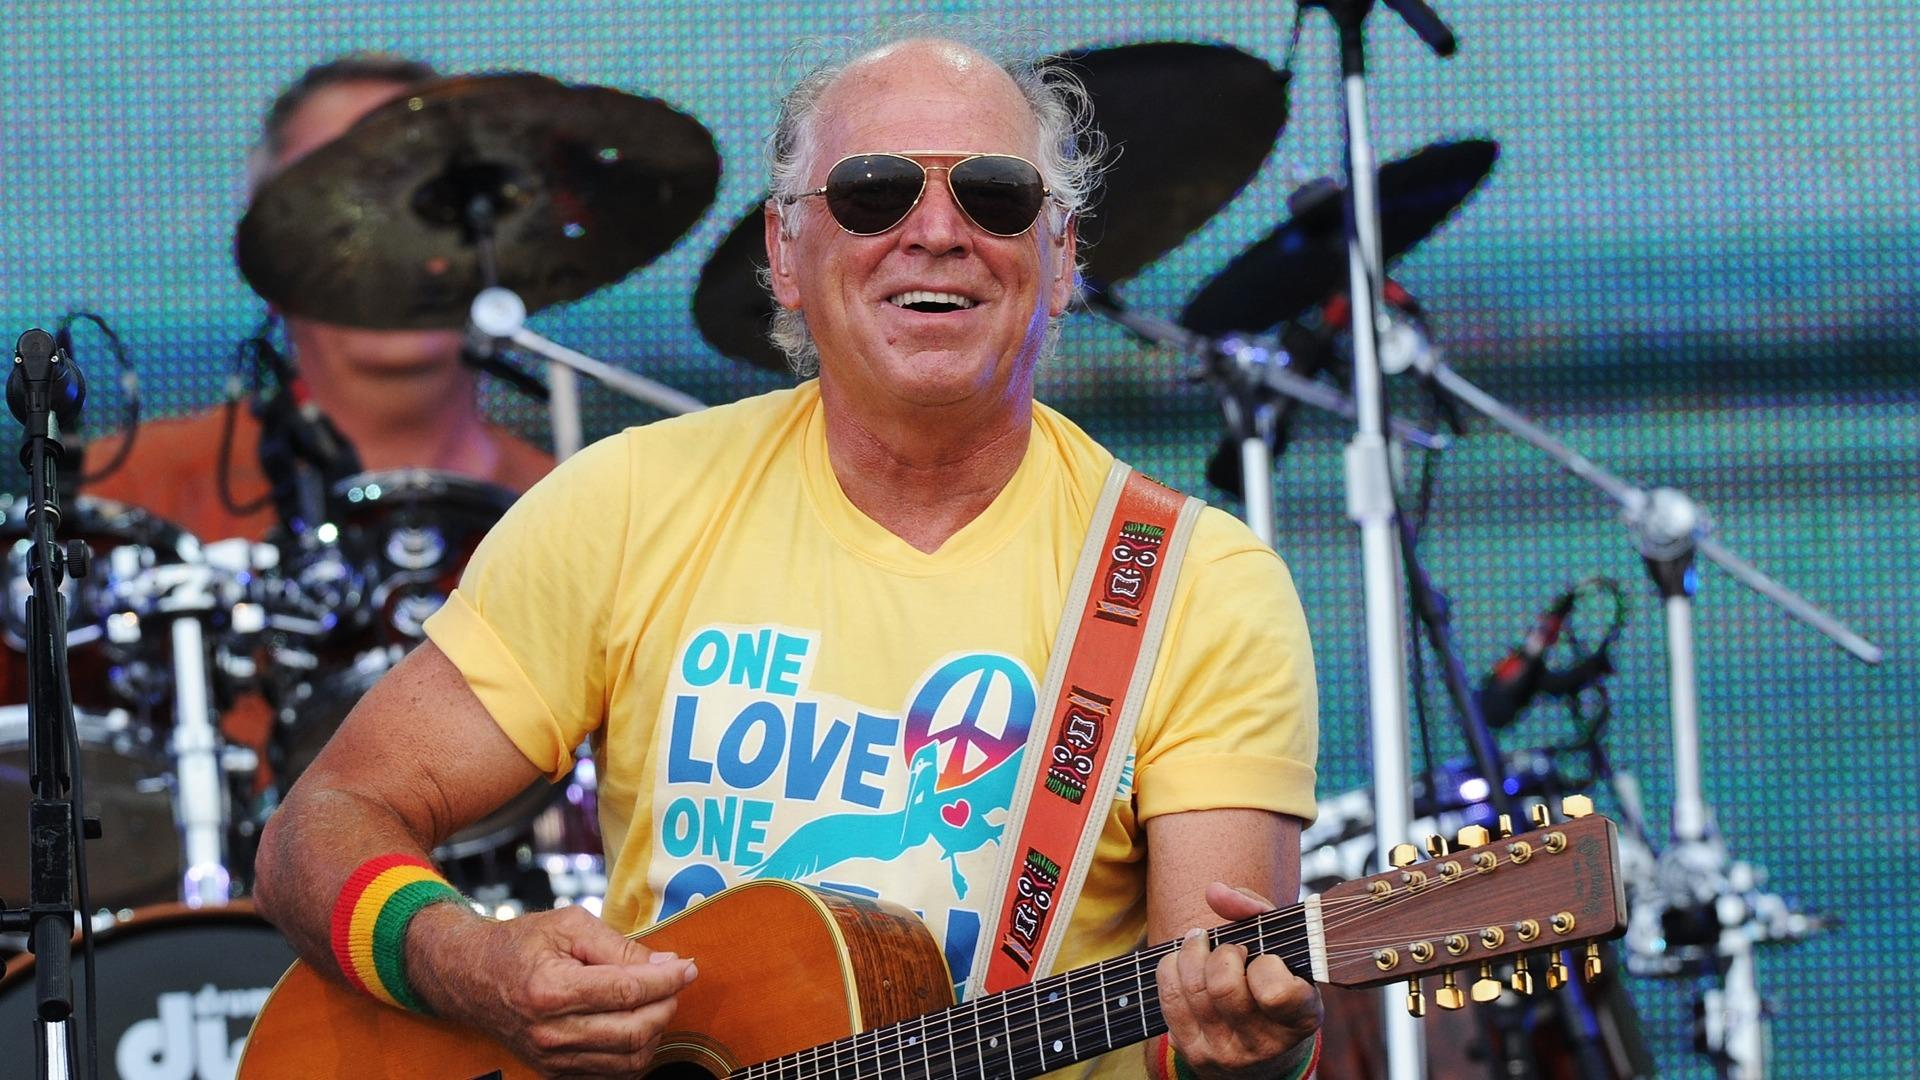 Jimmy Buffett on Forbes The singersongwriter could simply spend his time wasting away in Margaritaville the lifestyle empire that comprises about half of his